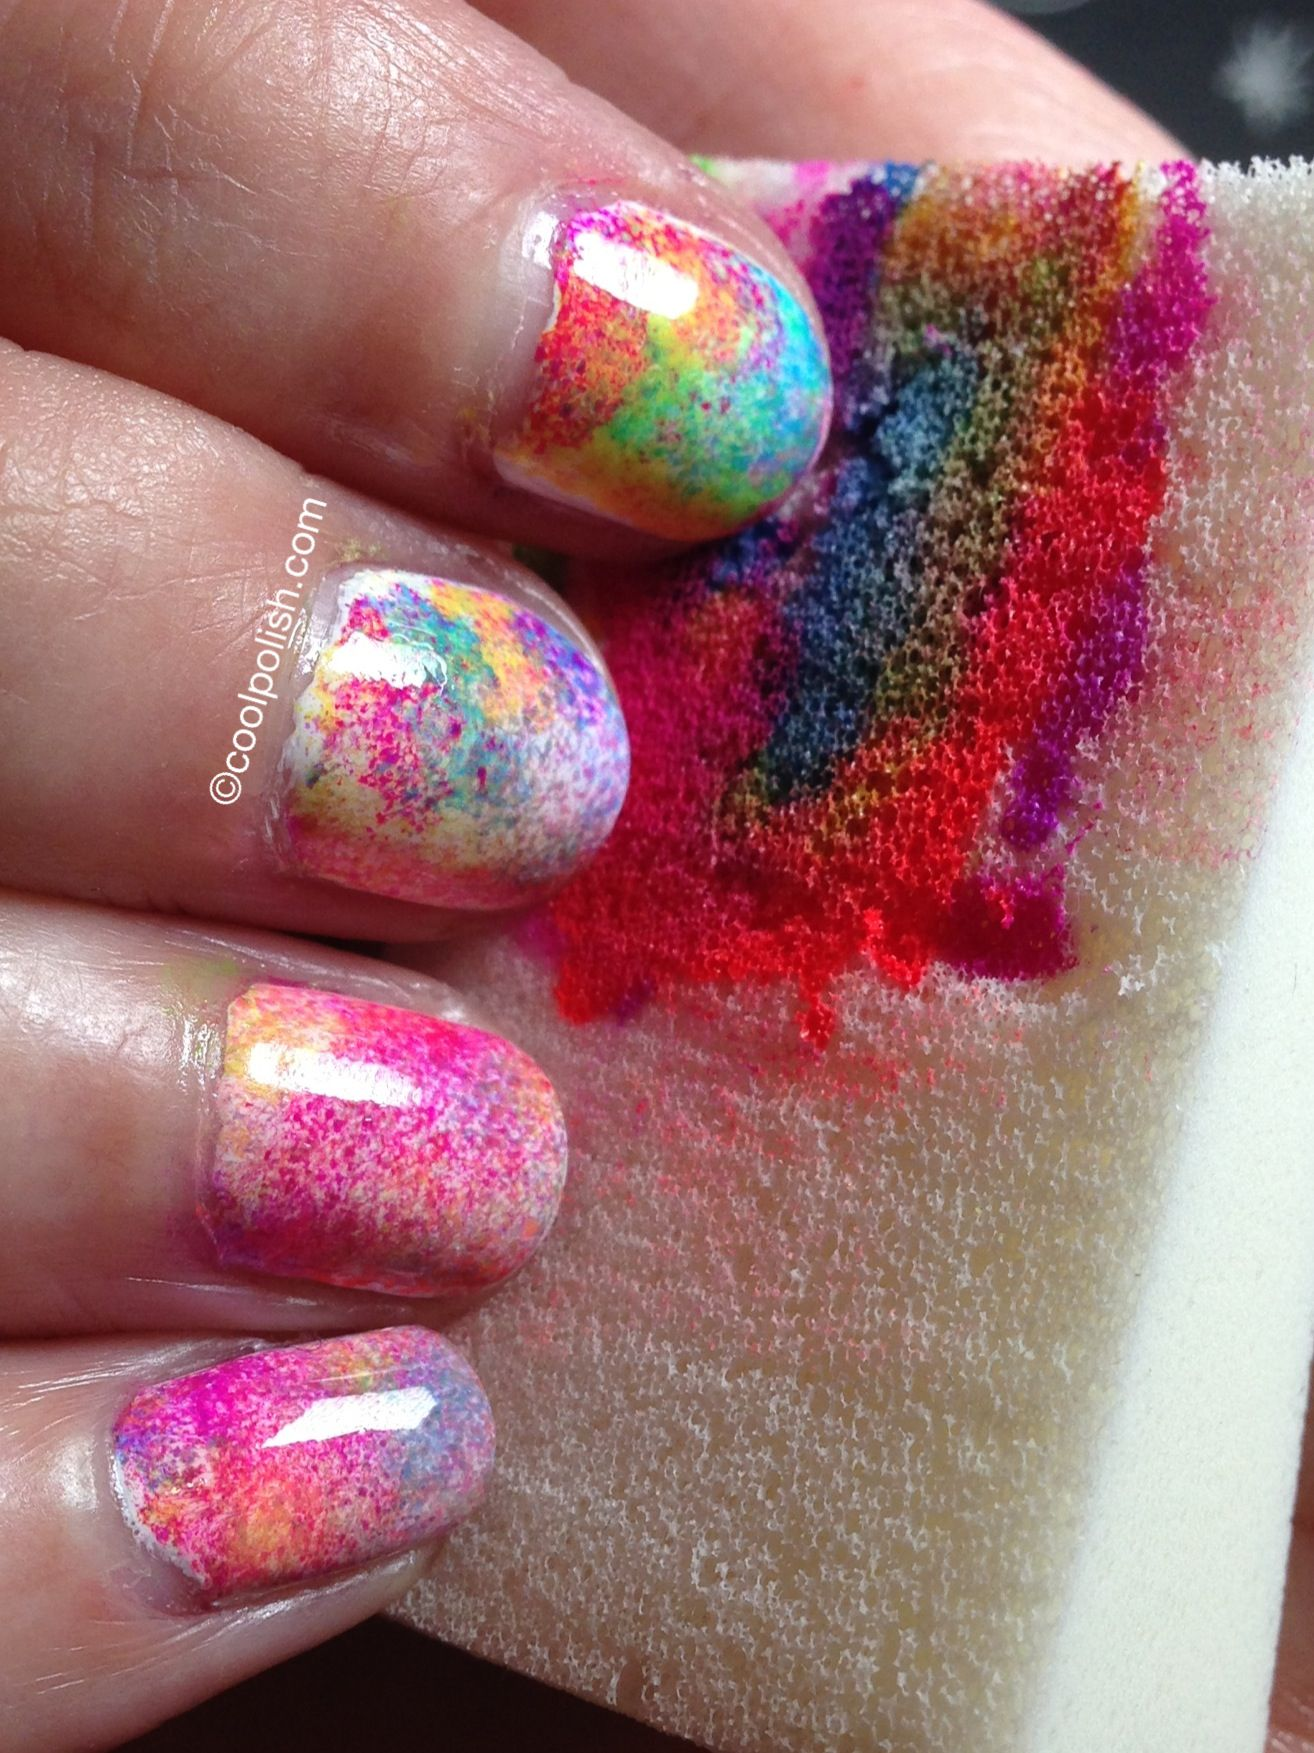 Tie Dye Nails Diy Could Also Do With Dark Colors To Look Like The